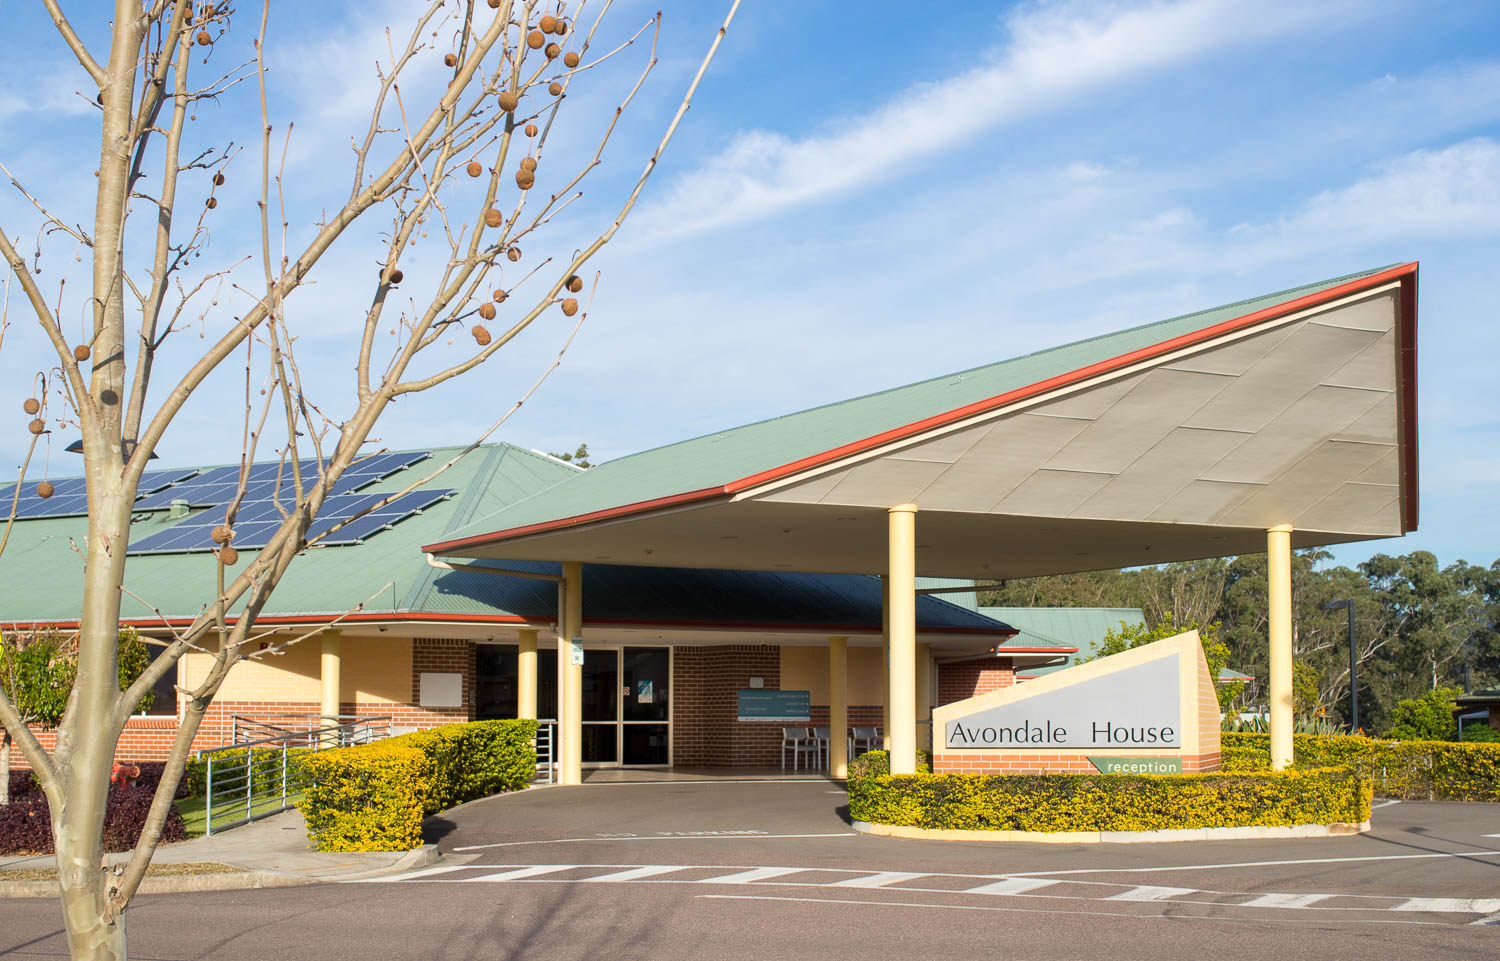 CommercialAgedCare-50